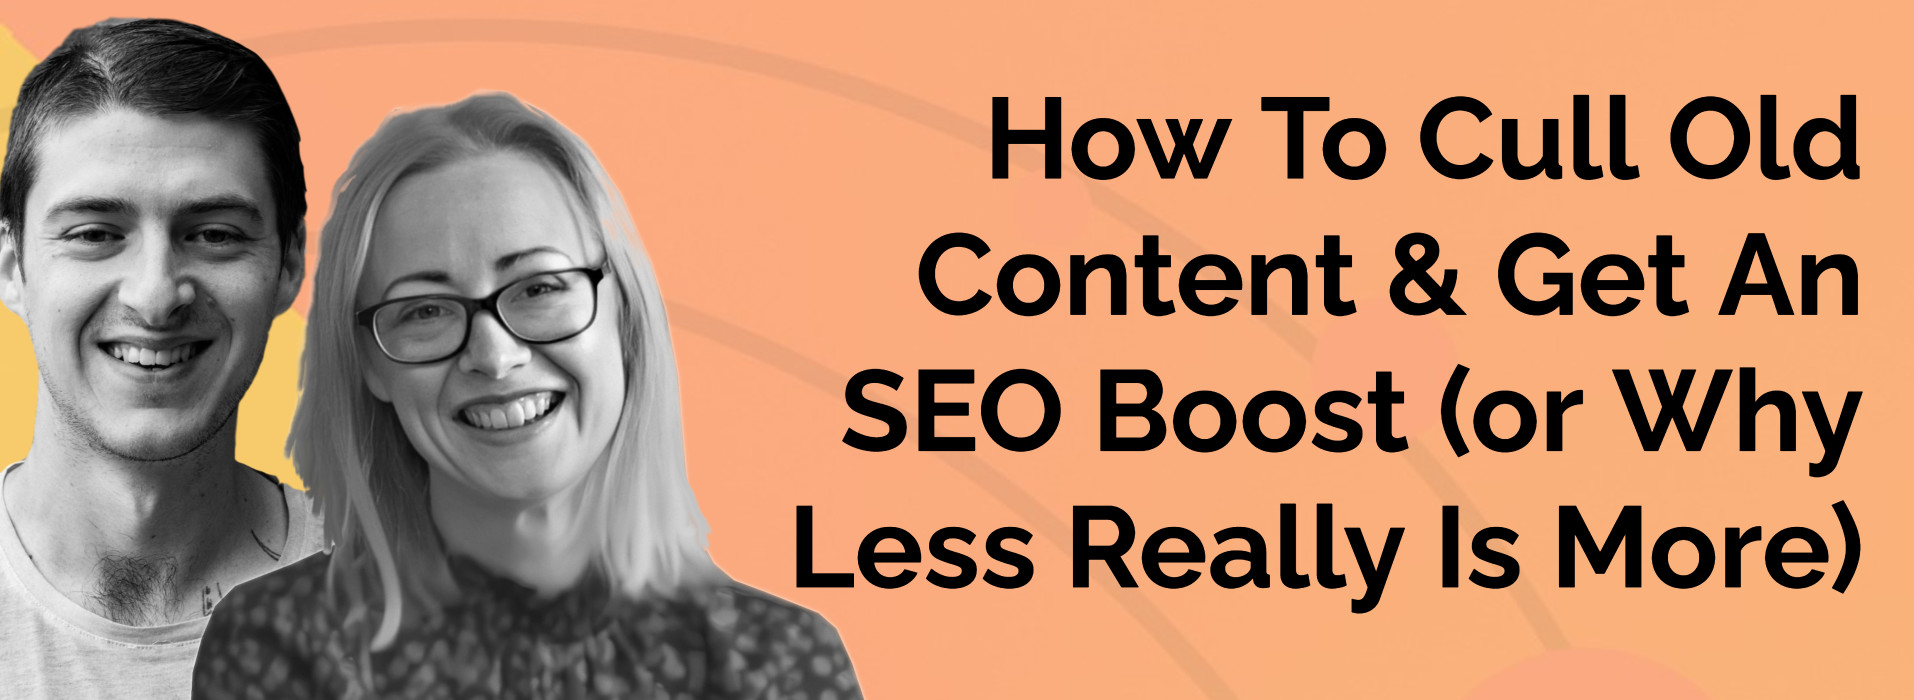 How To Cull Old Content & Get An SEO Boost - or Why Less Really Is More